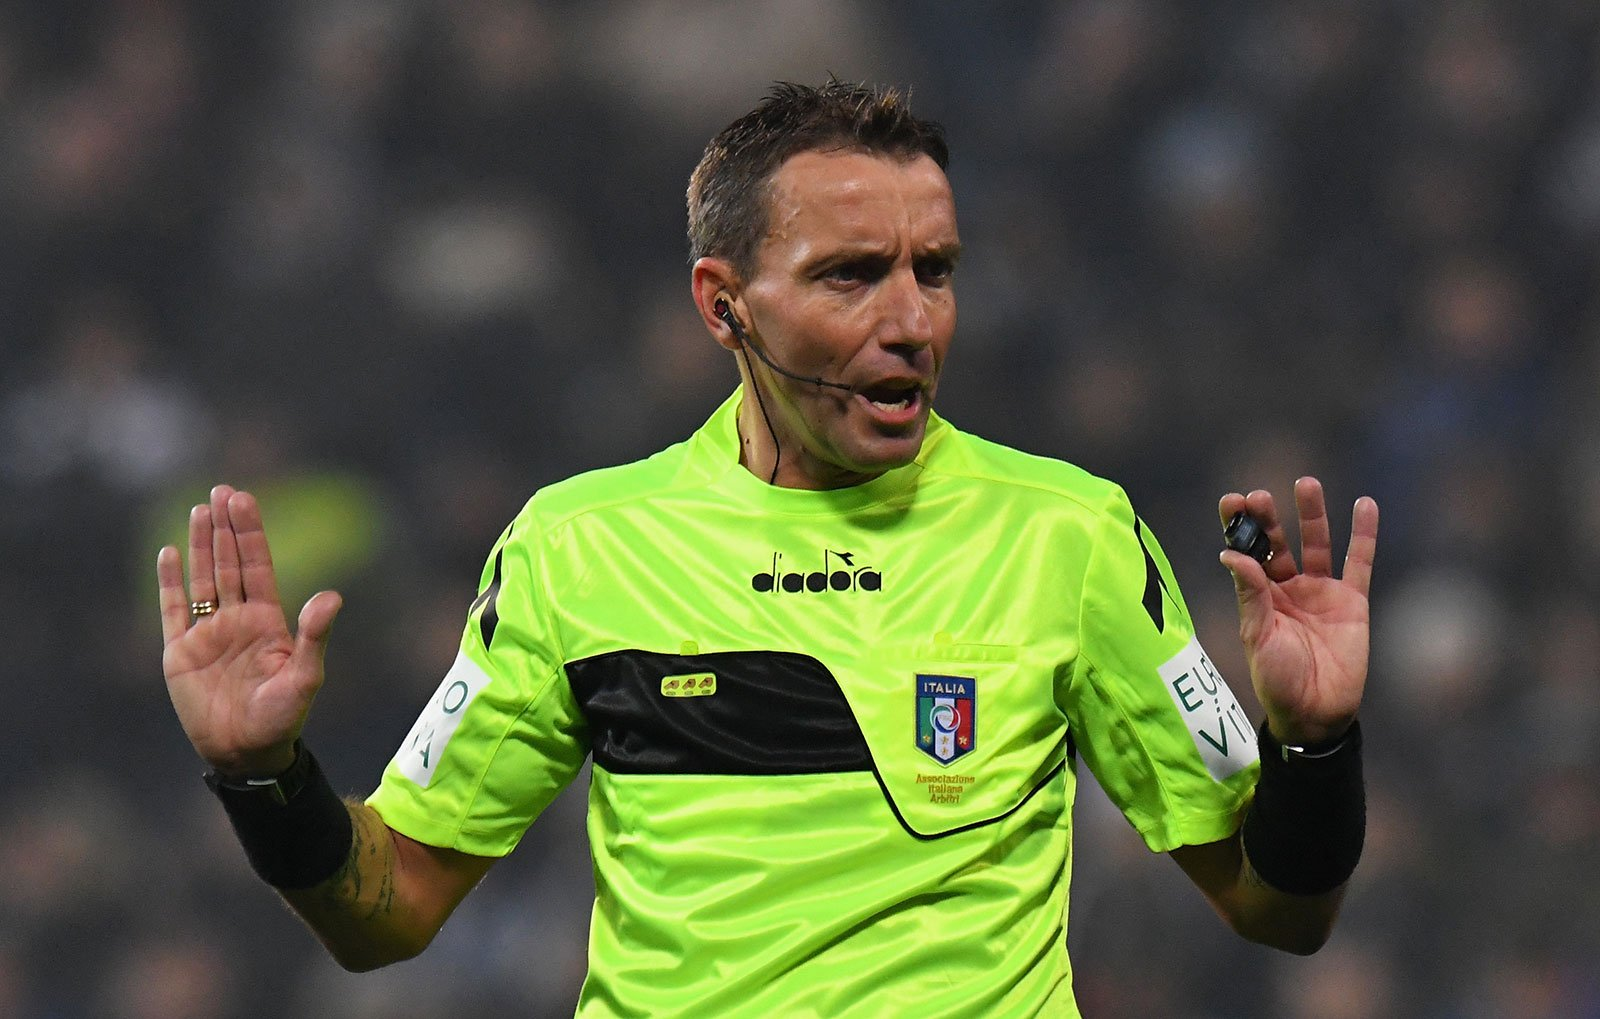 Paolo Mazzoleni during Sassuolo-Juventus at Mapei Stadium - Città del Tricolore on February 10, 2019. (Photo by Alessandro Sabattini/Getty Images)